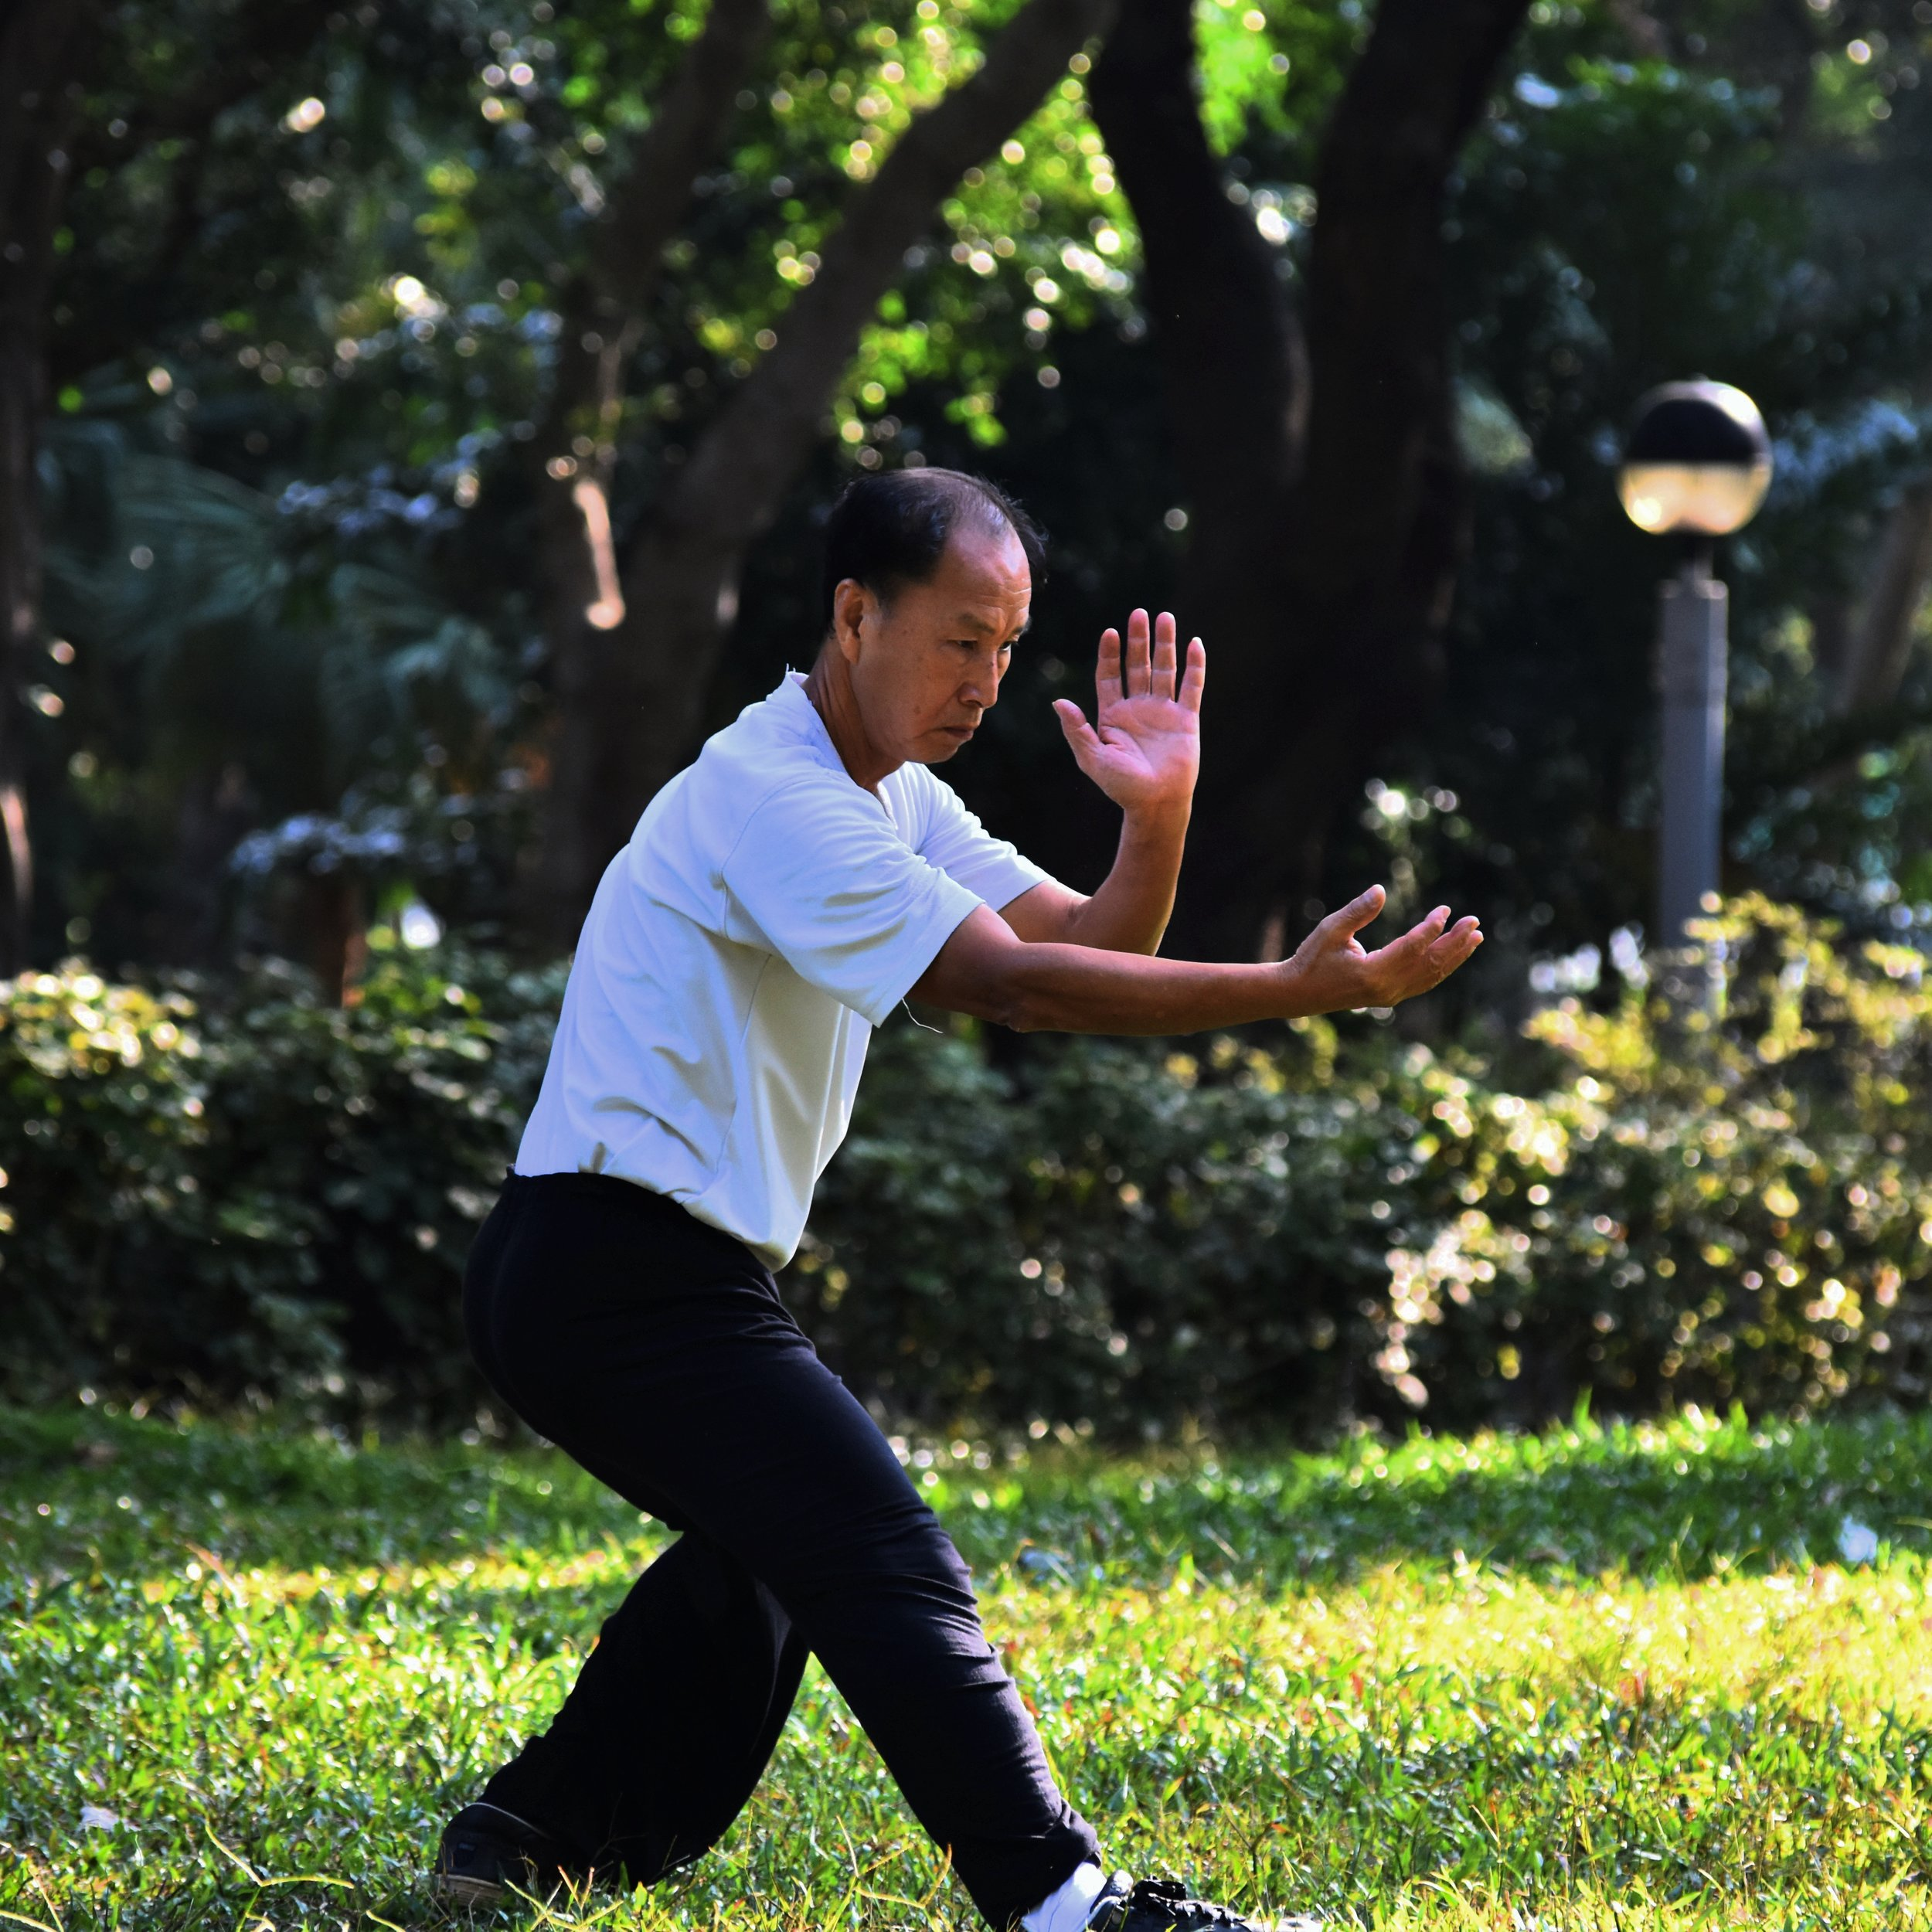 Tai Chi and postural stability in patients with parkinson's disease - Fuzhong Li, Ph.D., Peter Harmer, Ph.D., M.P.H., Kathleen Fitzgerald, M.D., Elizabeth Eckstrom, M.D., M.P.H., Ronald Stock, M.D., Johnny Galver, P.T., Gianni Maddalozzo, Ph.D., and Sara S. Batya, M.D.